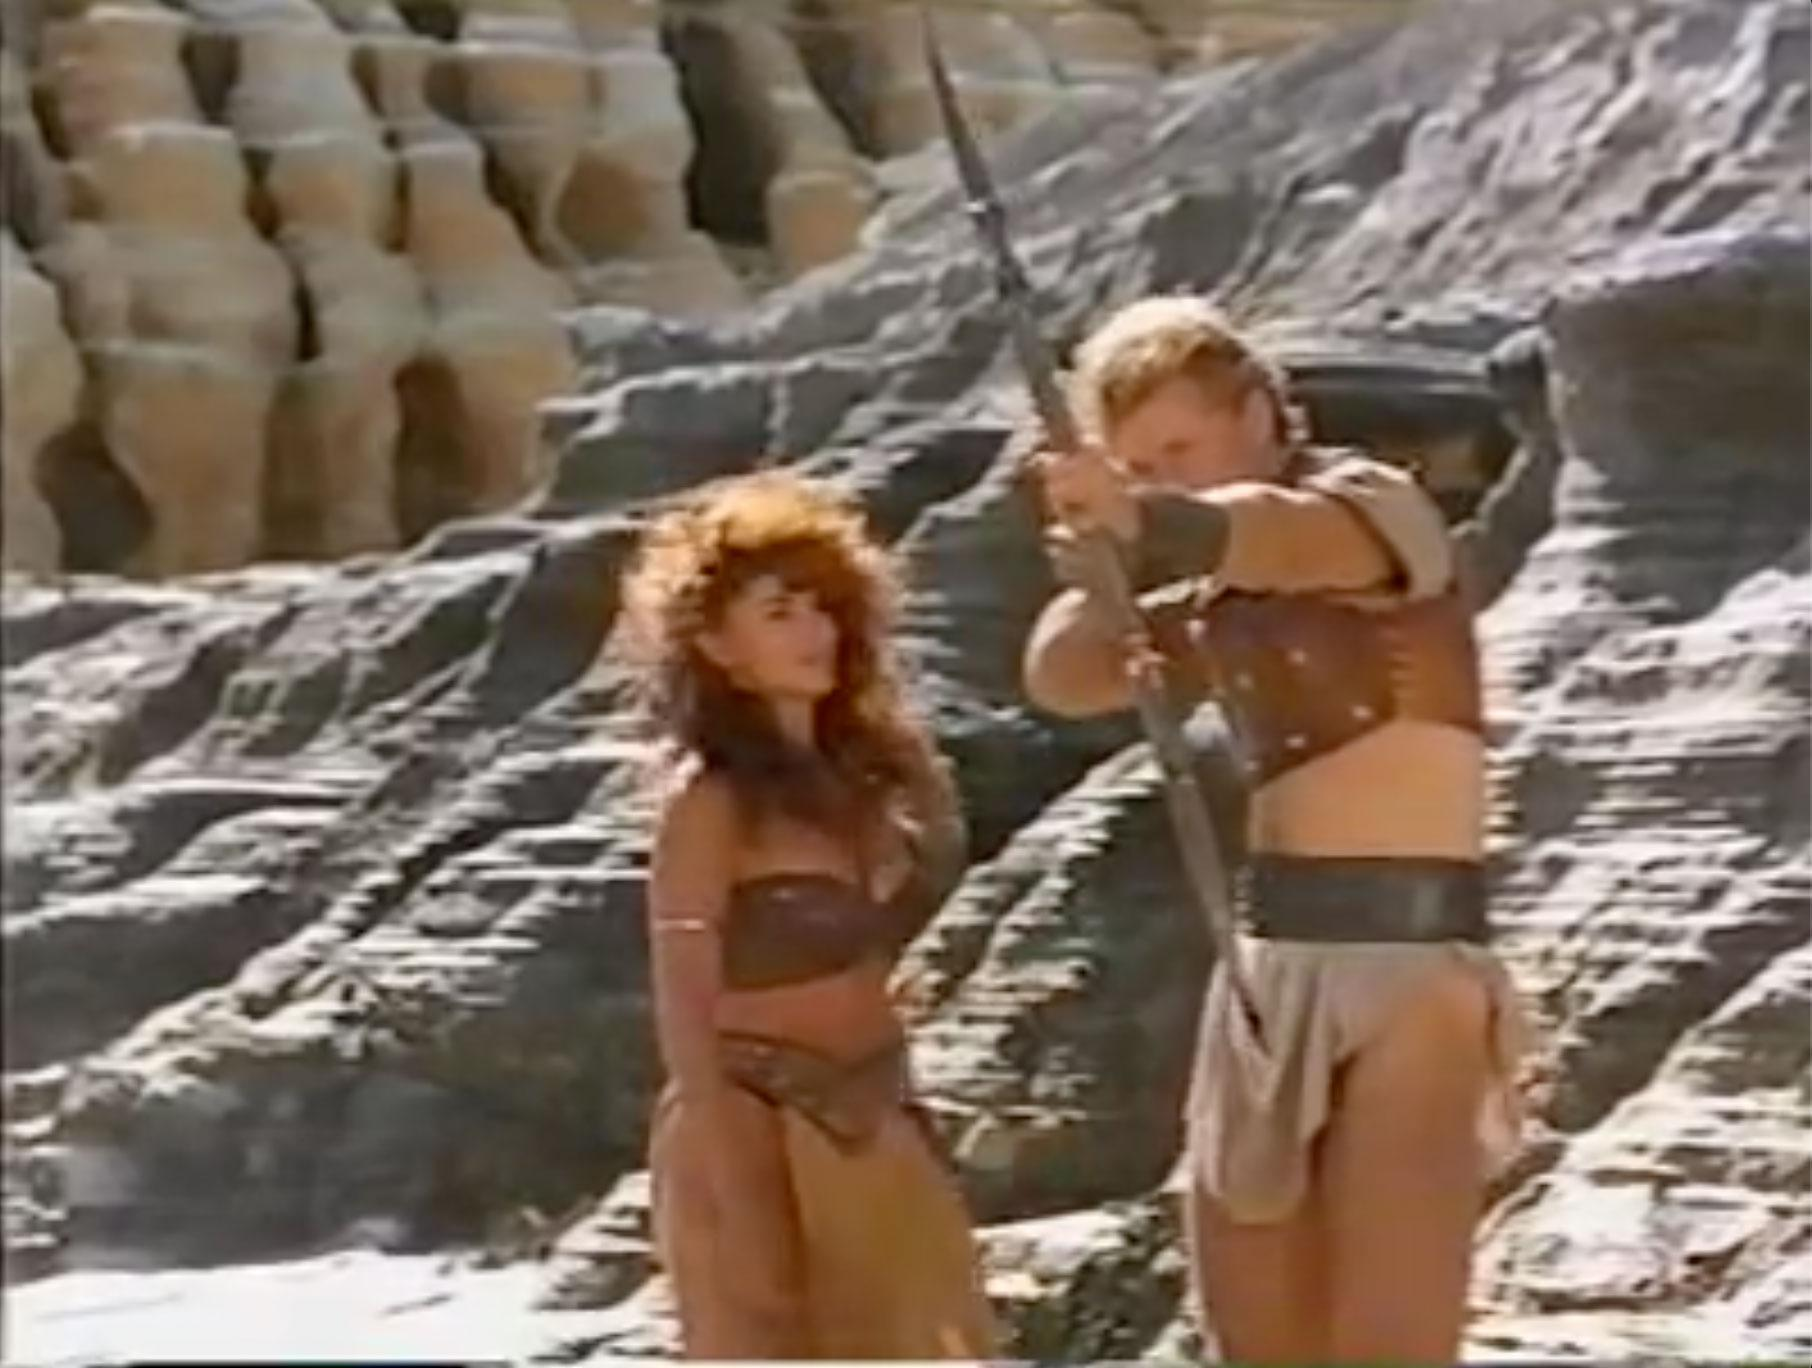 Rebecca Michelle Ferratti and Urbano Barberini in Gor (1987)